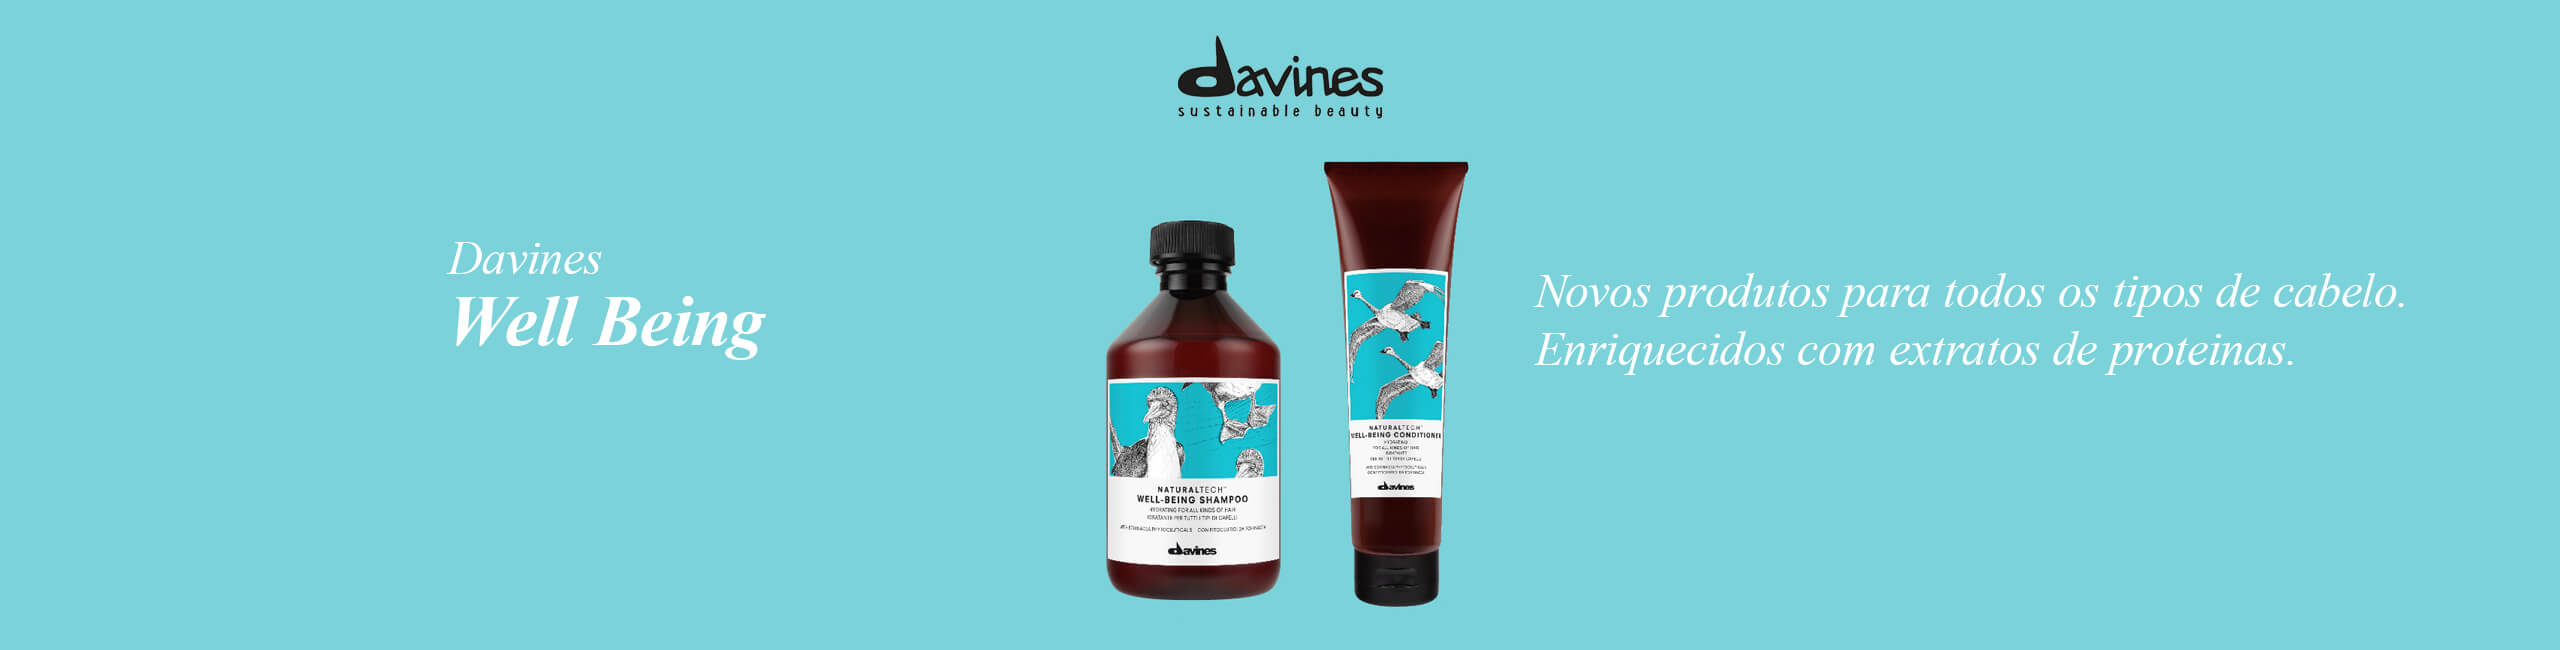 Davines Well Being